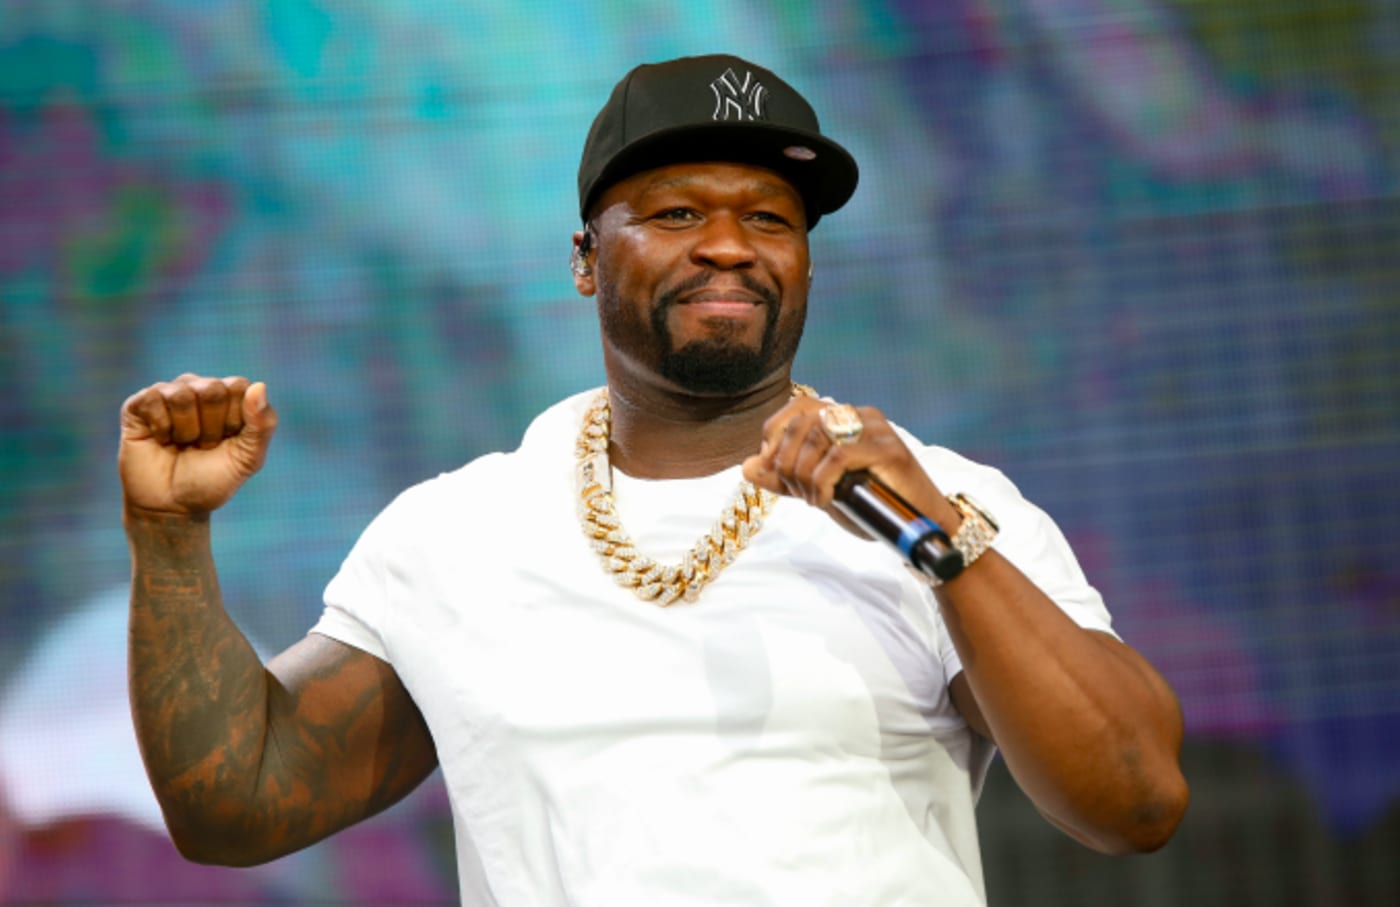 50 Cent performs during Friday James Live 2019